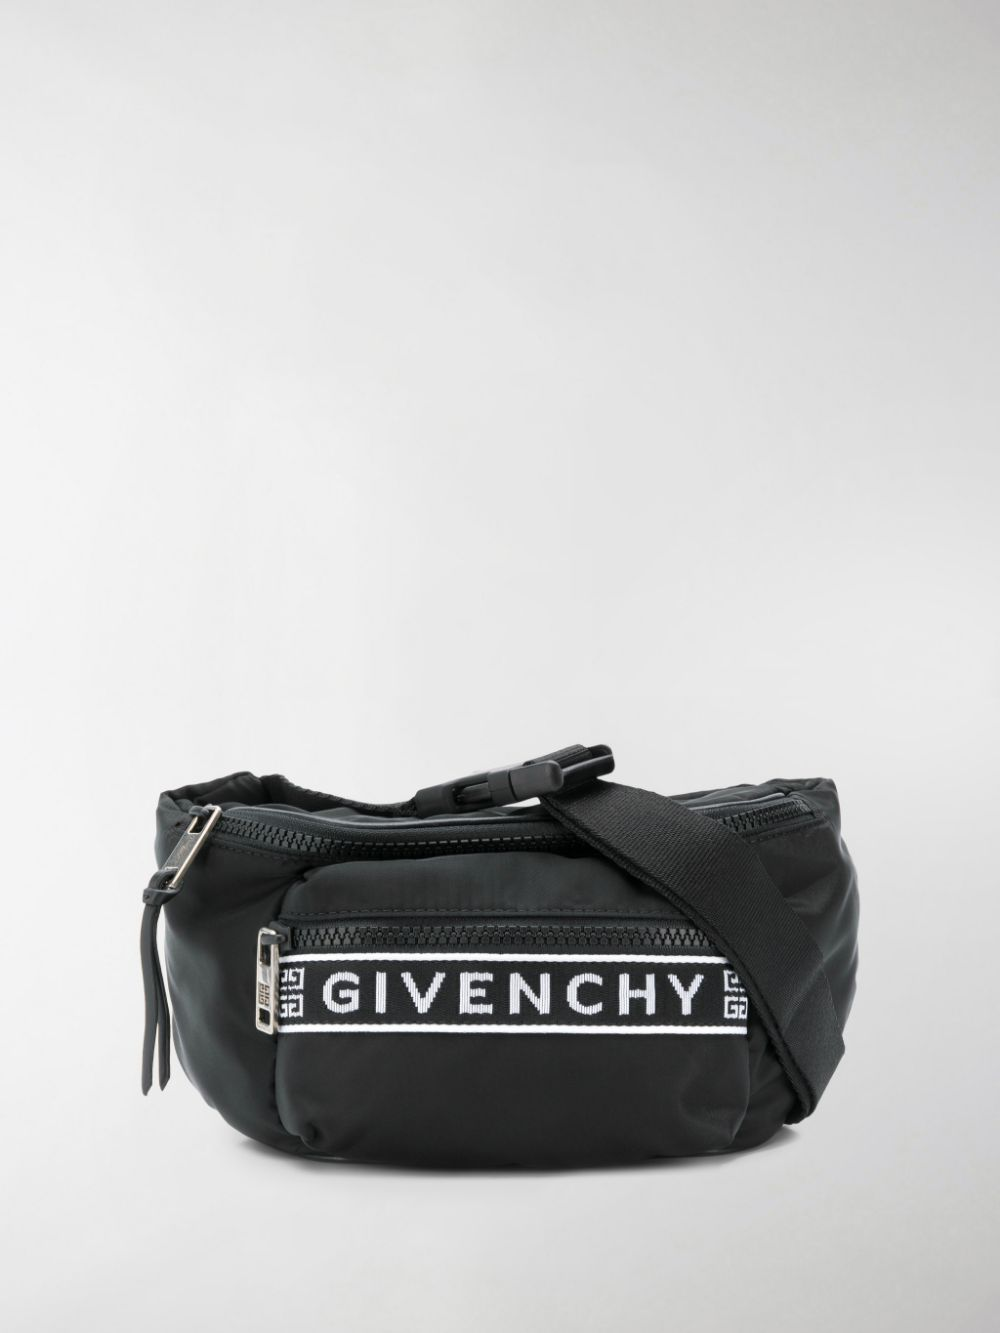 GIVENCHY GIVENCHY | Belt bag | BK5037K0B5004